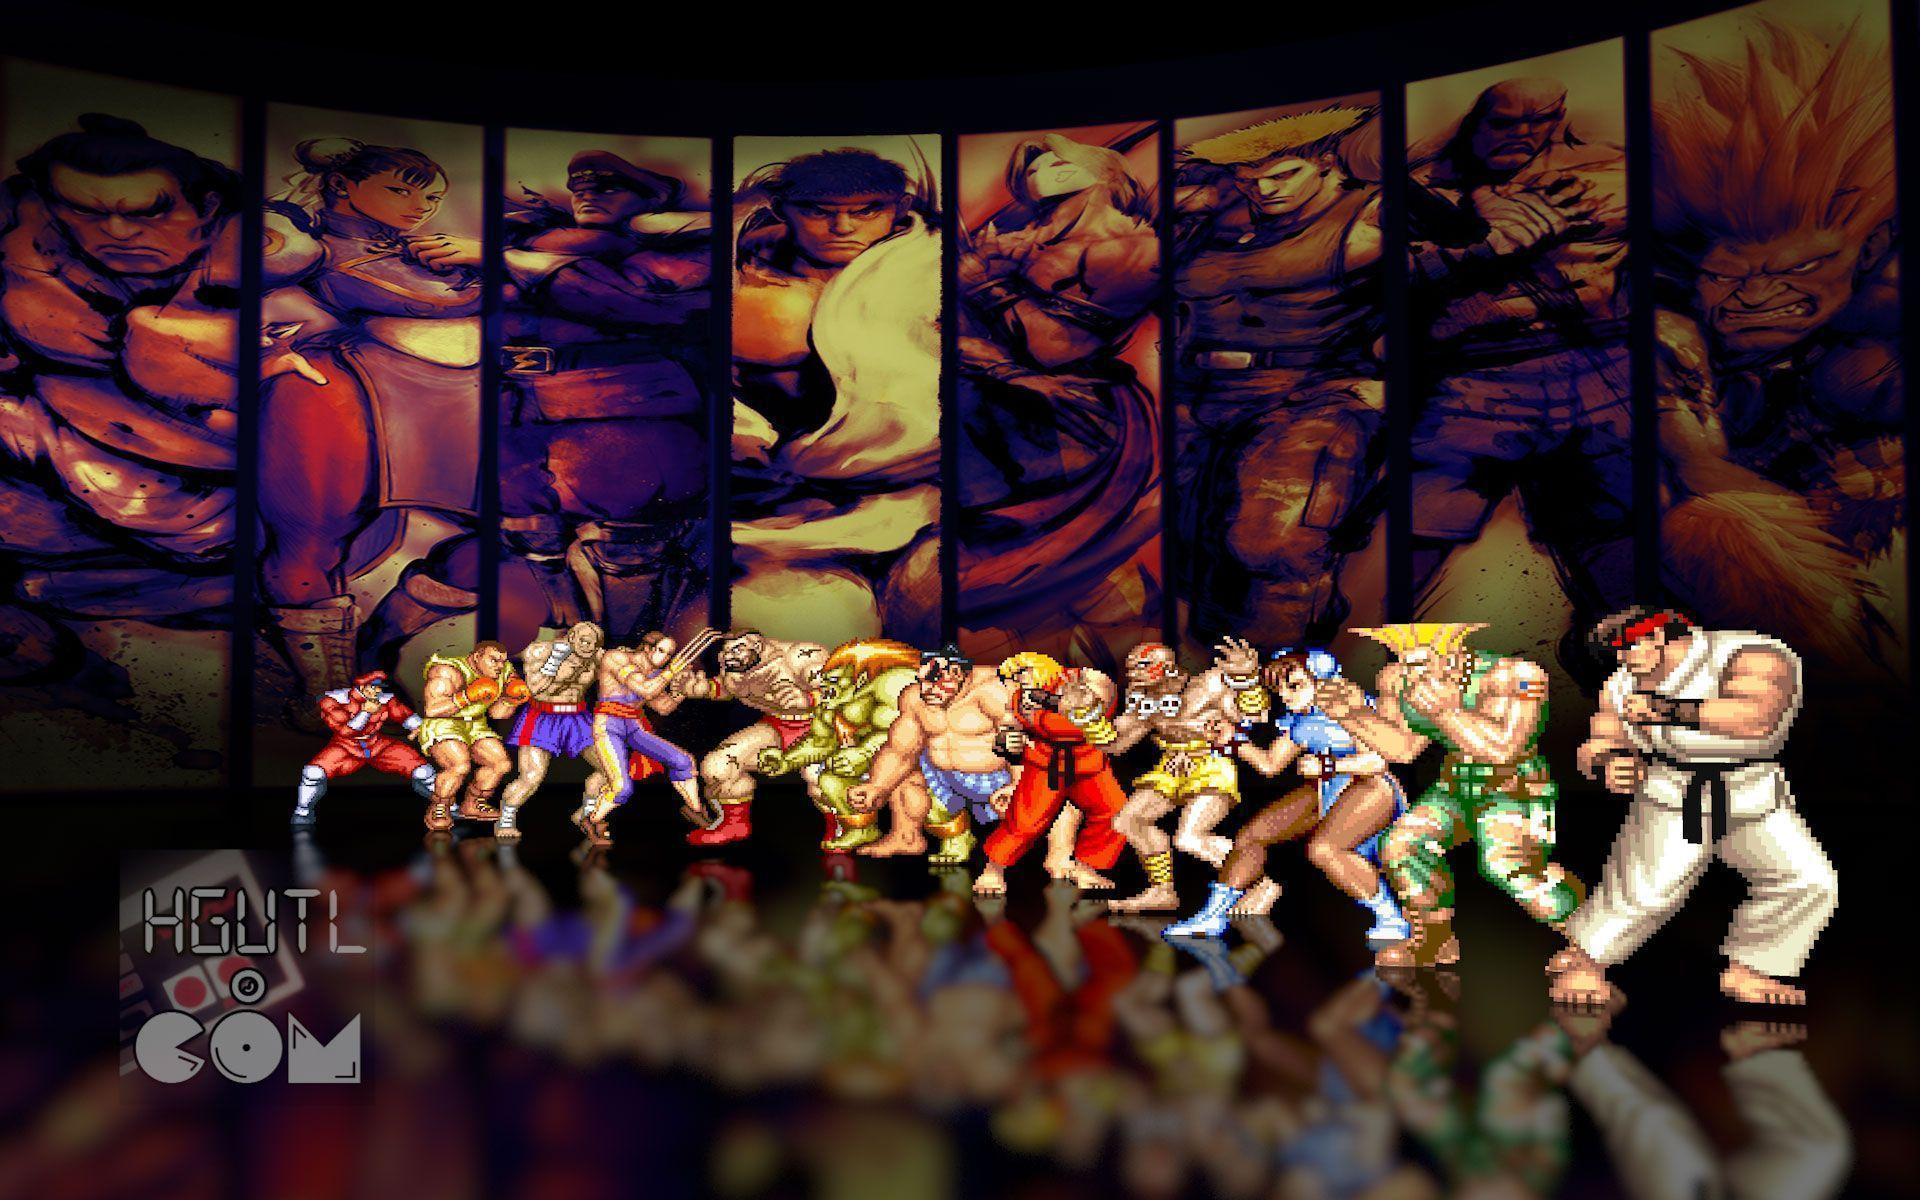 Street Fighter 2 Wallpapers - Wallpaper Cave